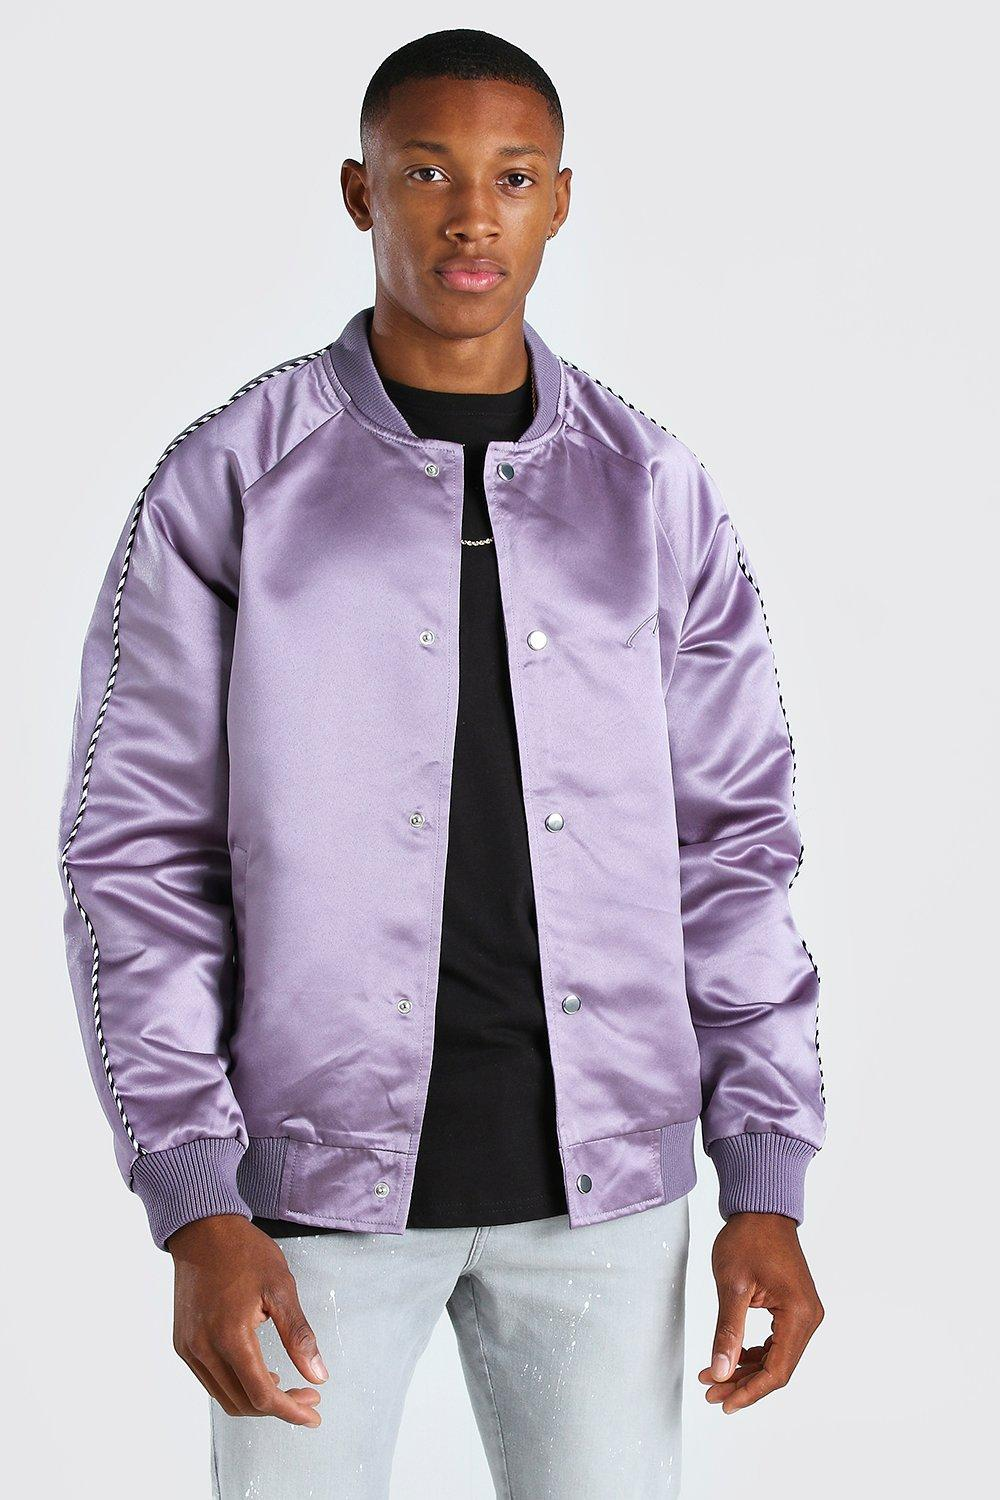 mens satin bomber jacket with chest man embroidery - grey